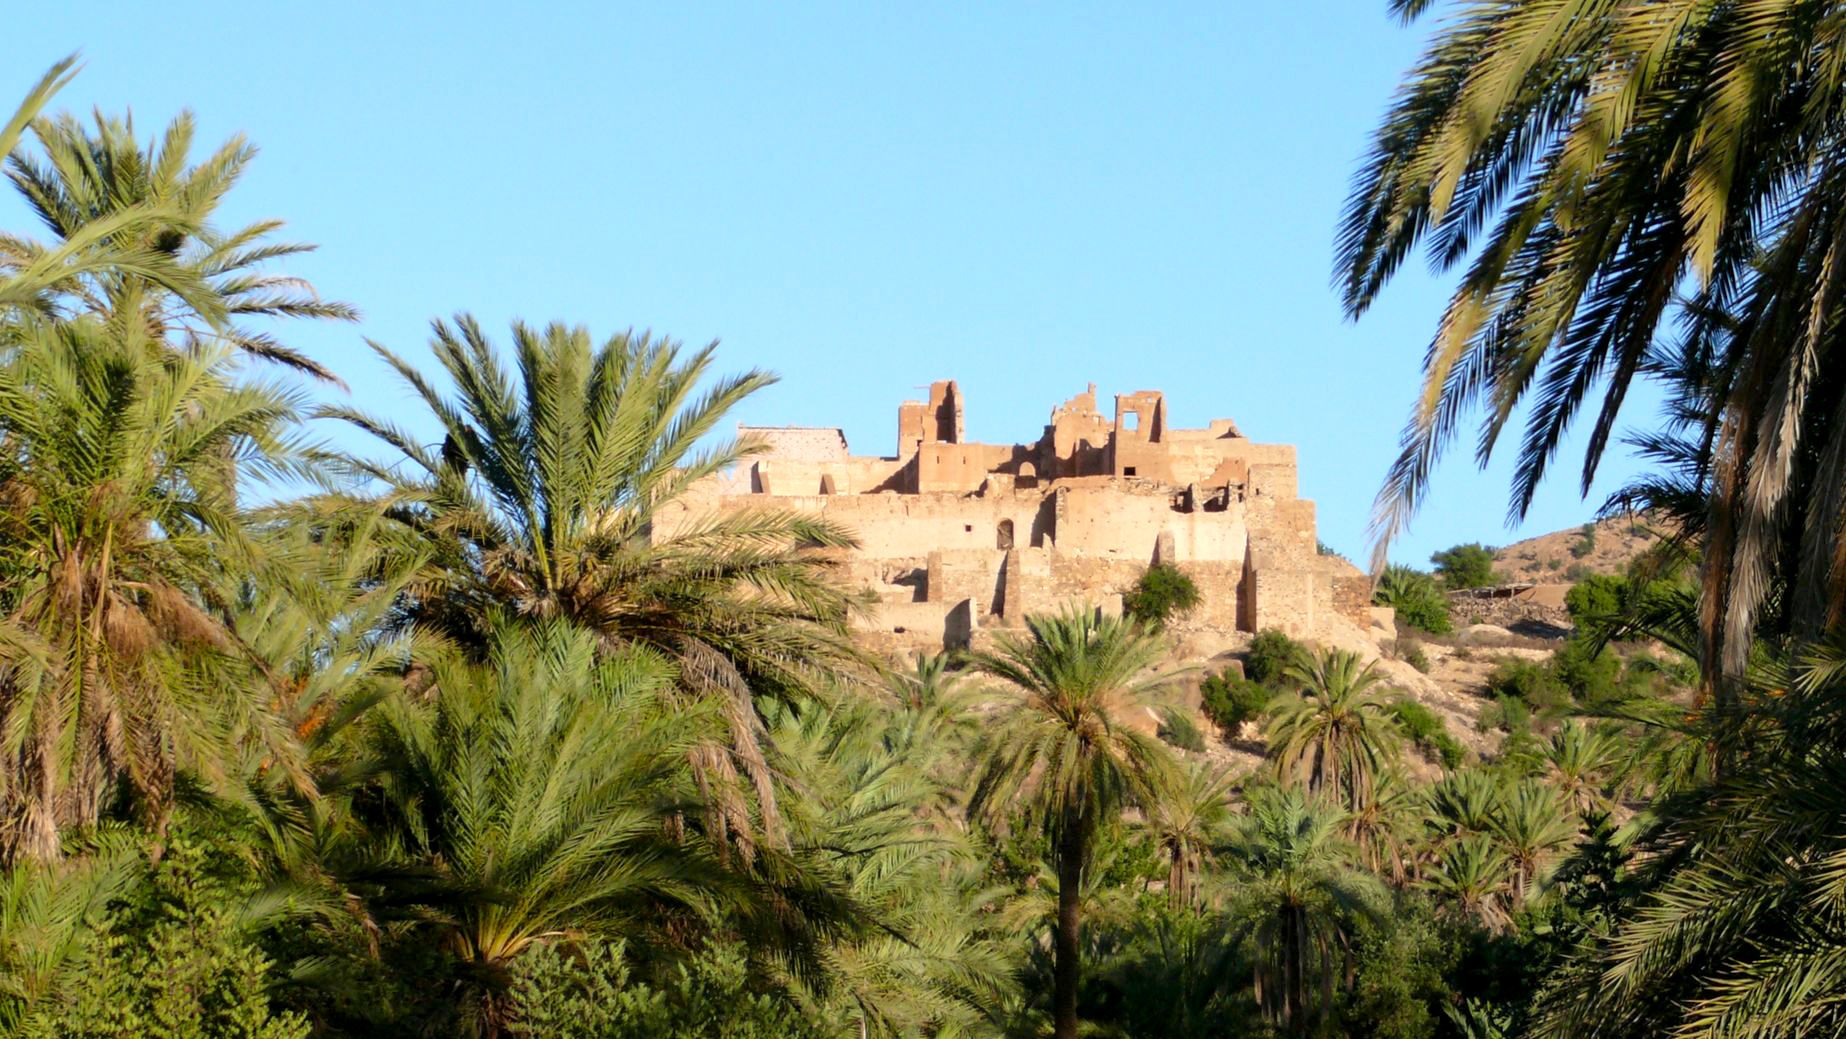 Kasbah overlooking a palm grove in Taroudant